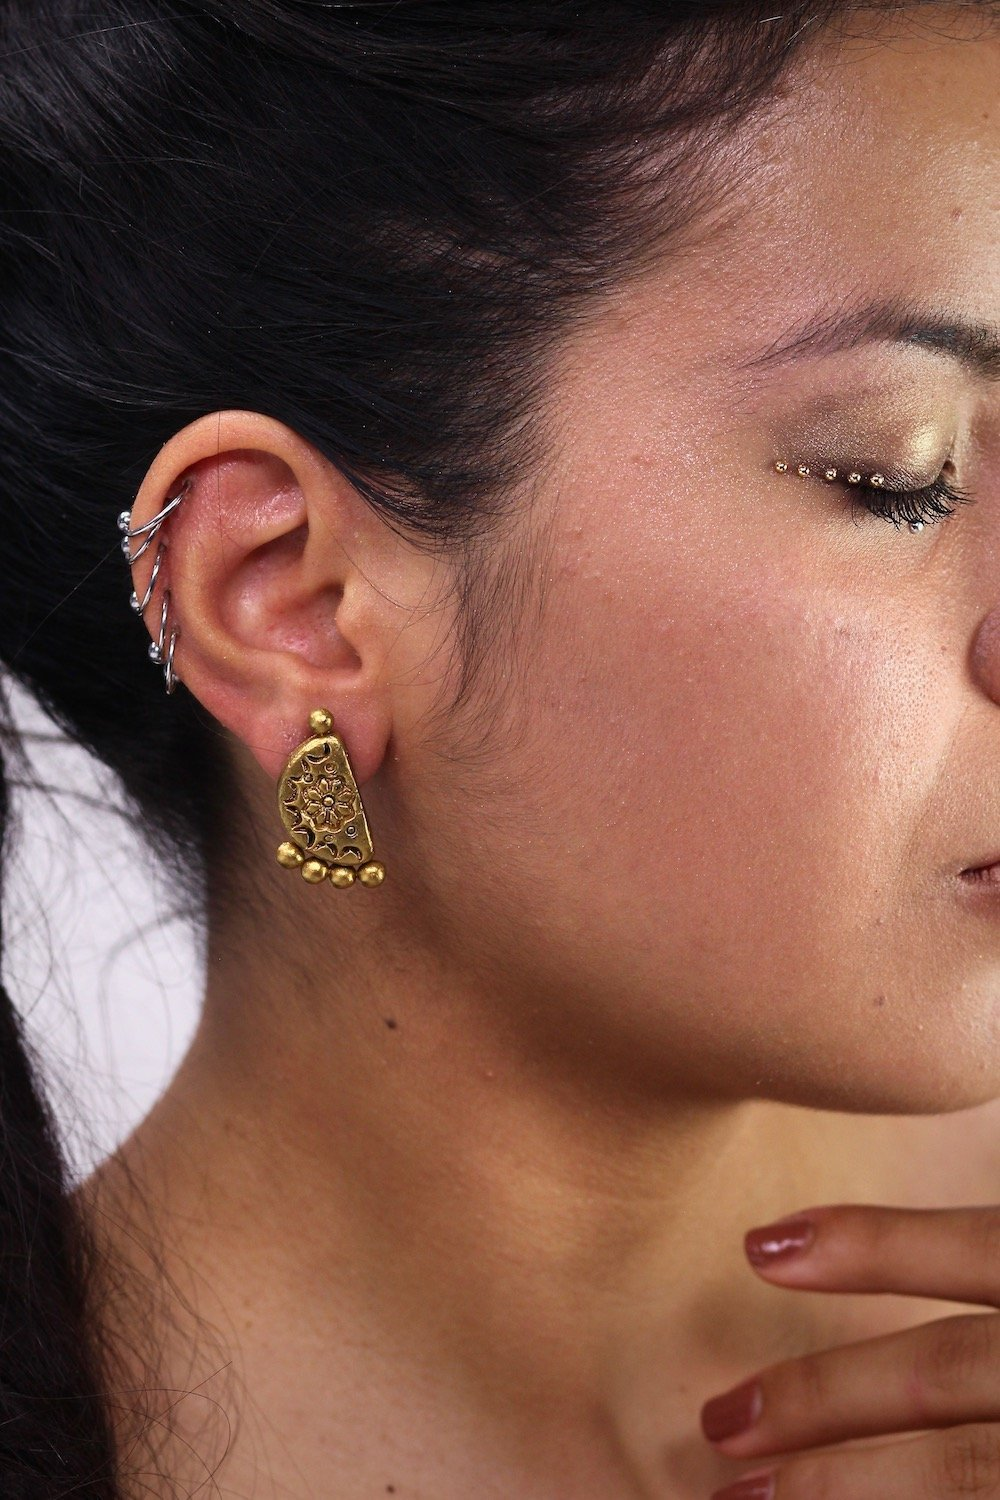 Semi Gold - Boucles d'oreilles - Azaadi, la mode responsable accessible